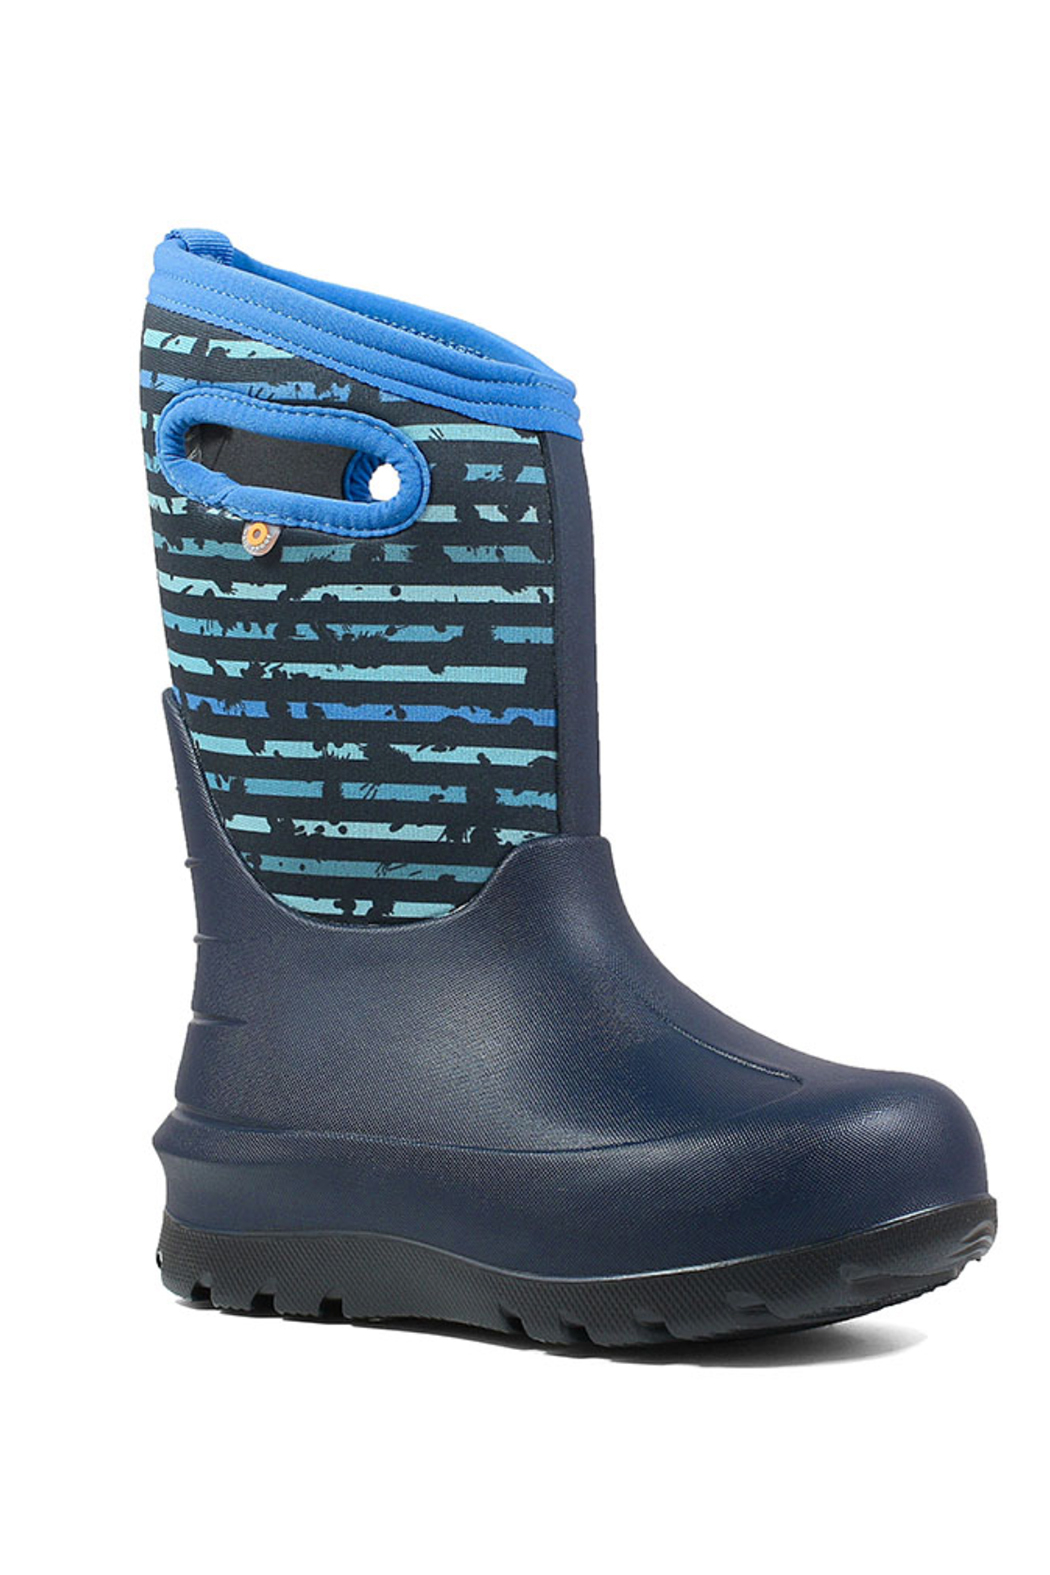 BOGS Neo-Classic Stripe Kids' Insulated Boots - Front Full Image